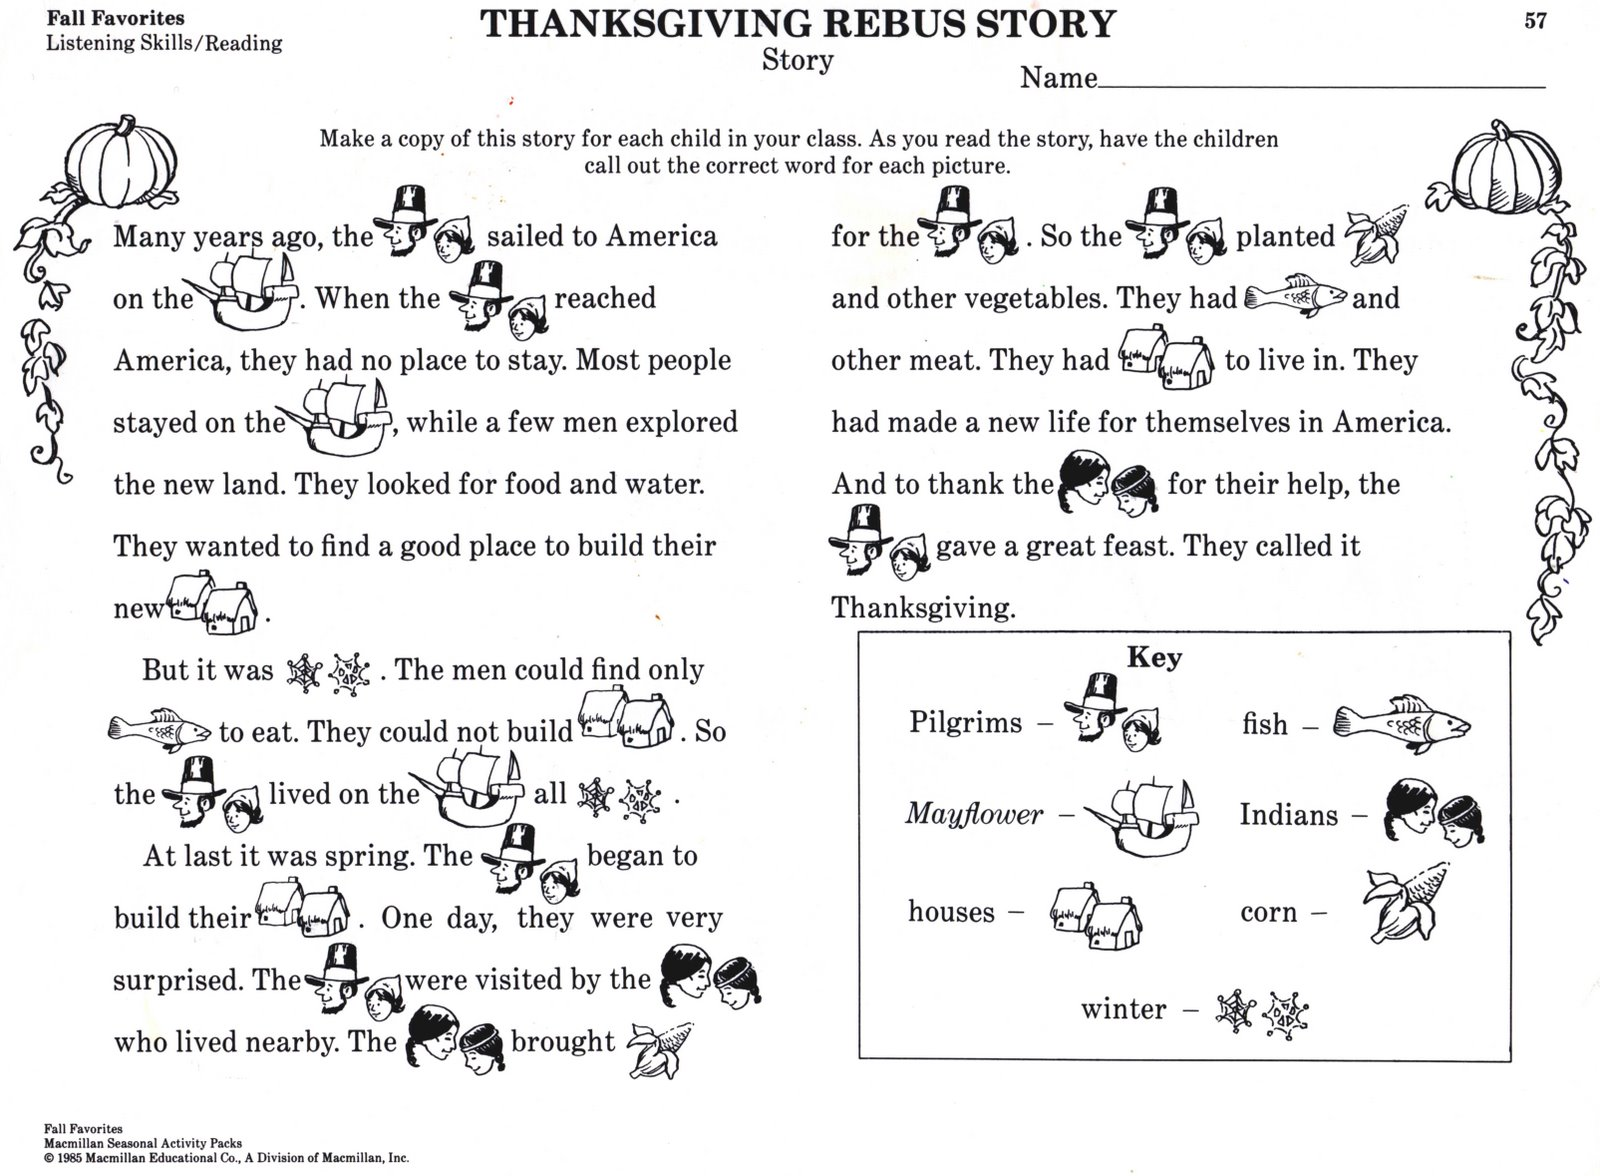 Preschool Thanksgiving Story